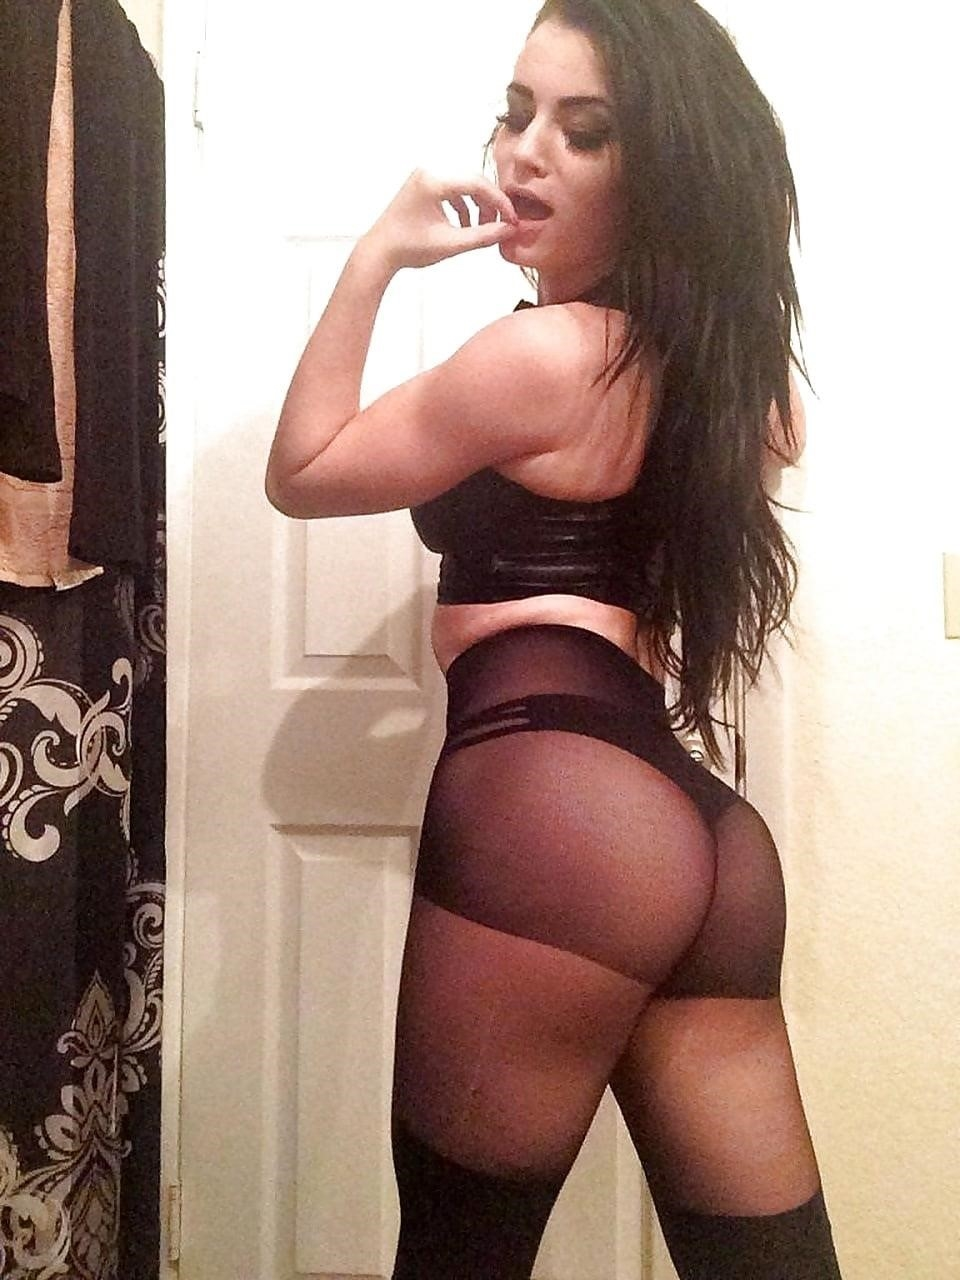 Paige wwe nude pictures-3309